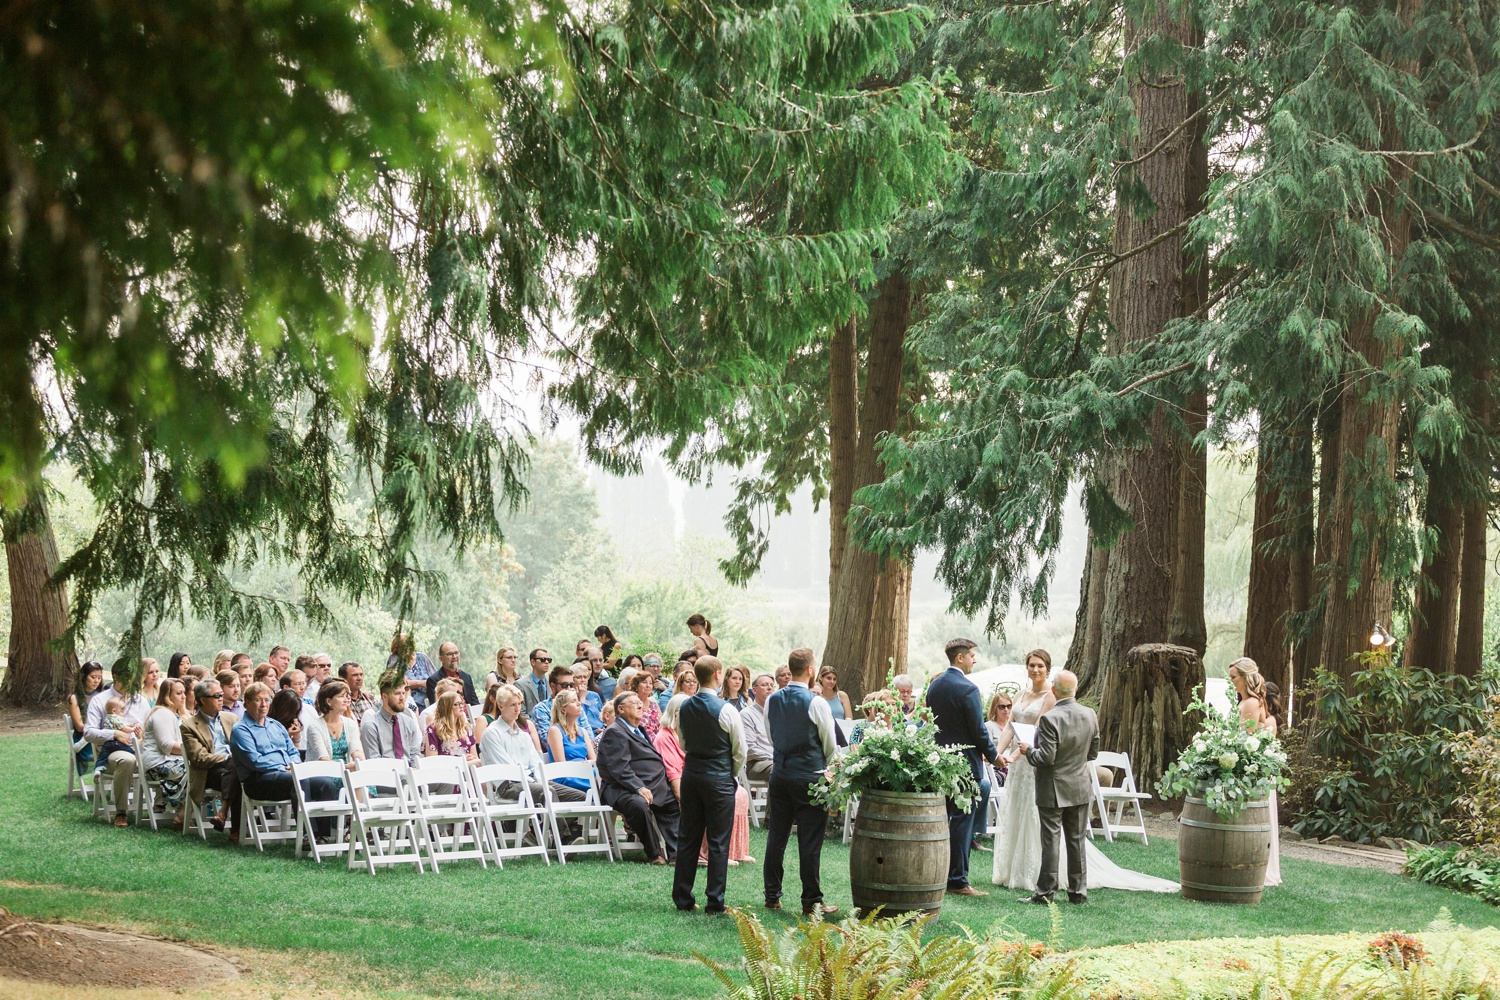 A photo of a wedding ceremony at Chateau Lill in Woodinville, a wedding venue near Seattle, WA.   Joanna Monger Photography   Seattle & Snohomish Photographer